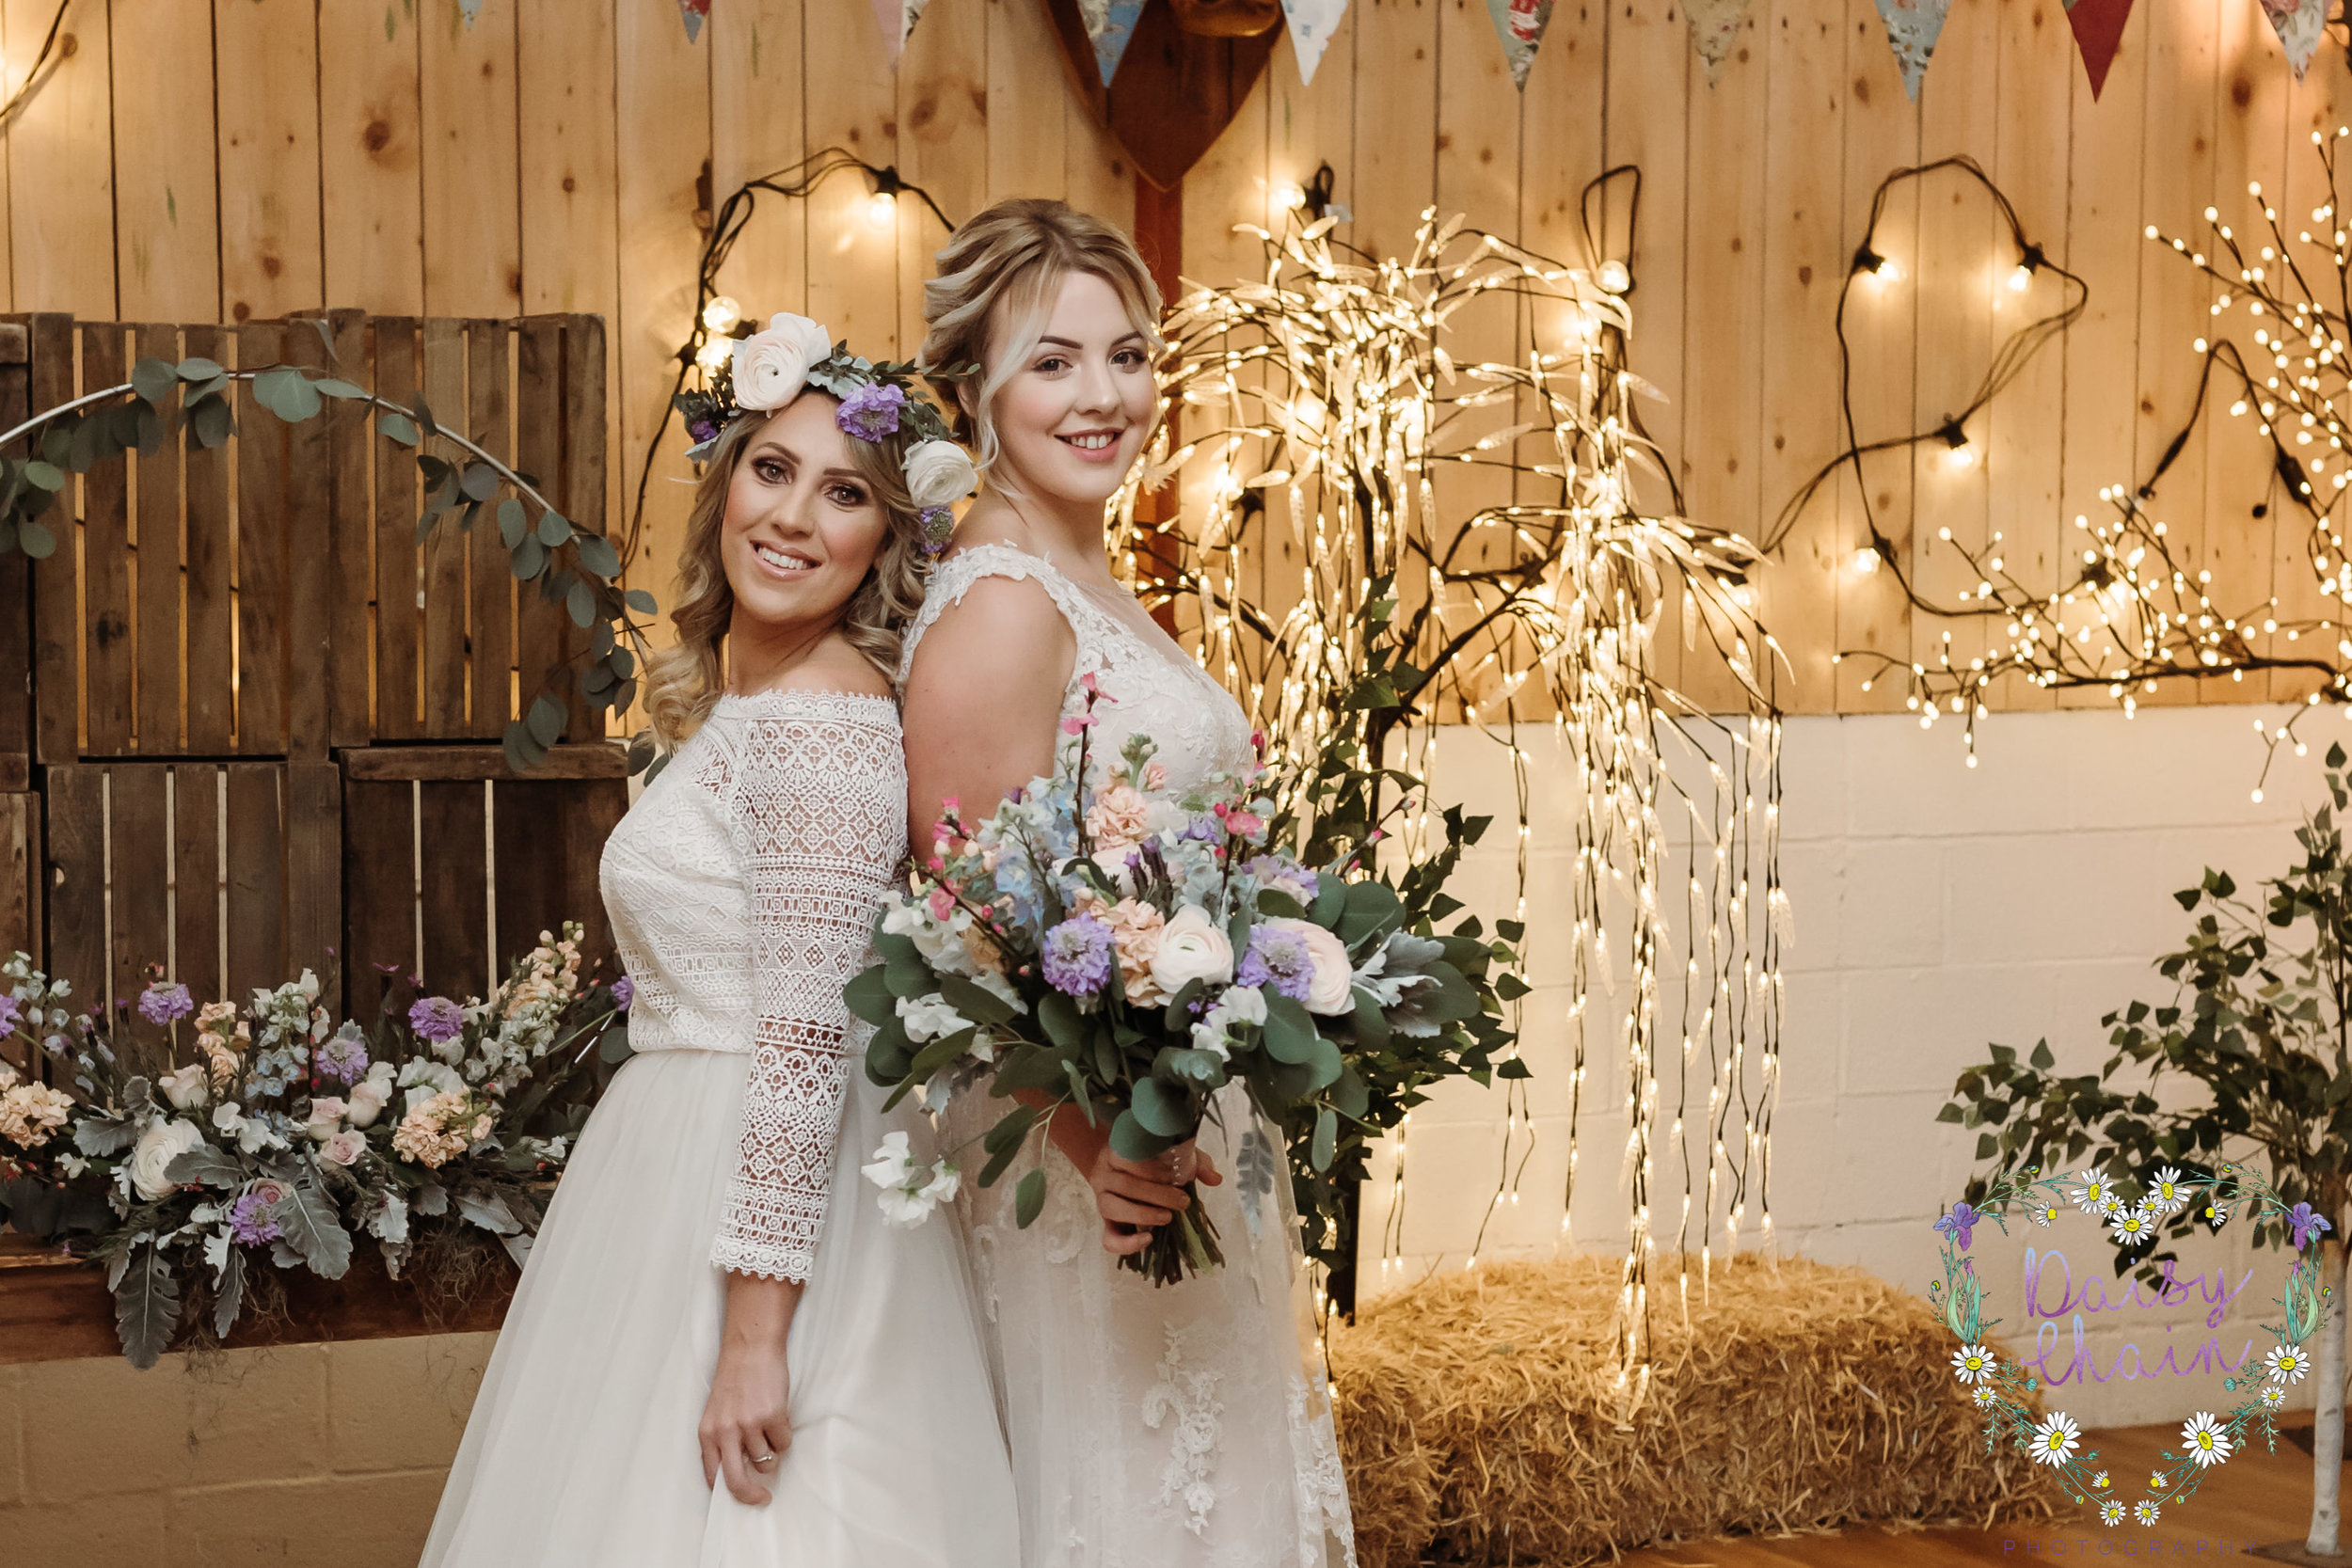 same sex wedding - two bride are better than one